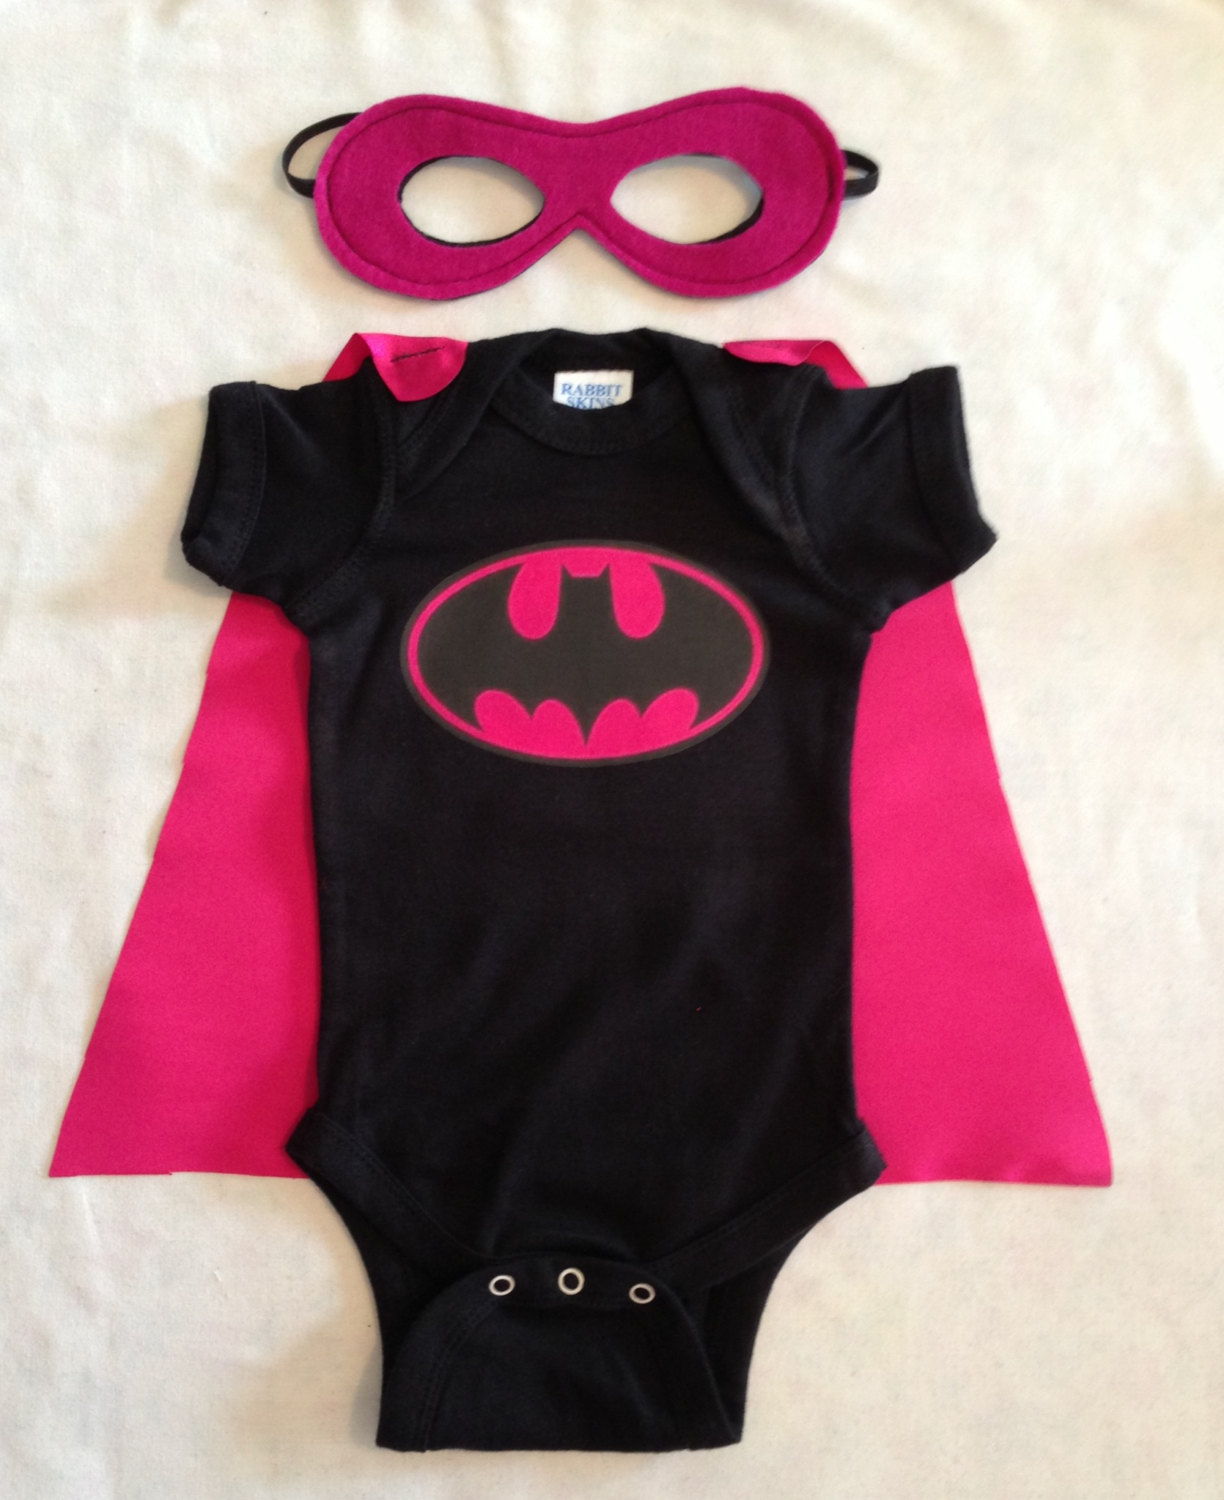 Outfit children with awesome glory and unstoppable power with our Superhero infant snapsuits and t-shirts! Star Wars, DC, Marvel we have it all. Check it out!